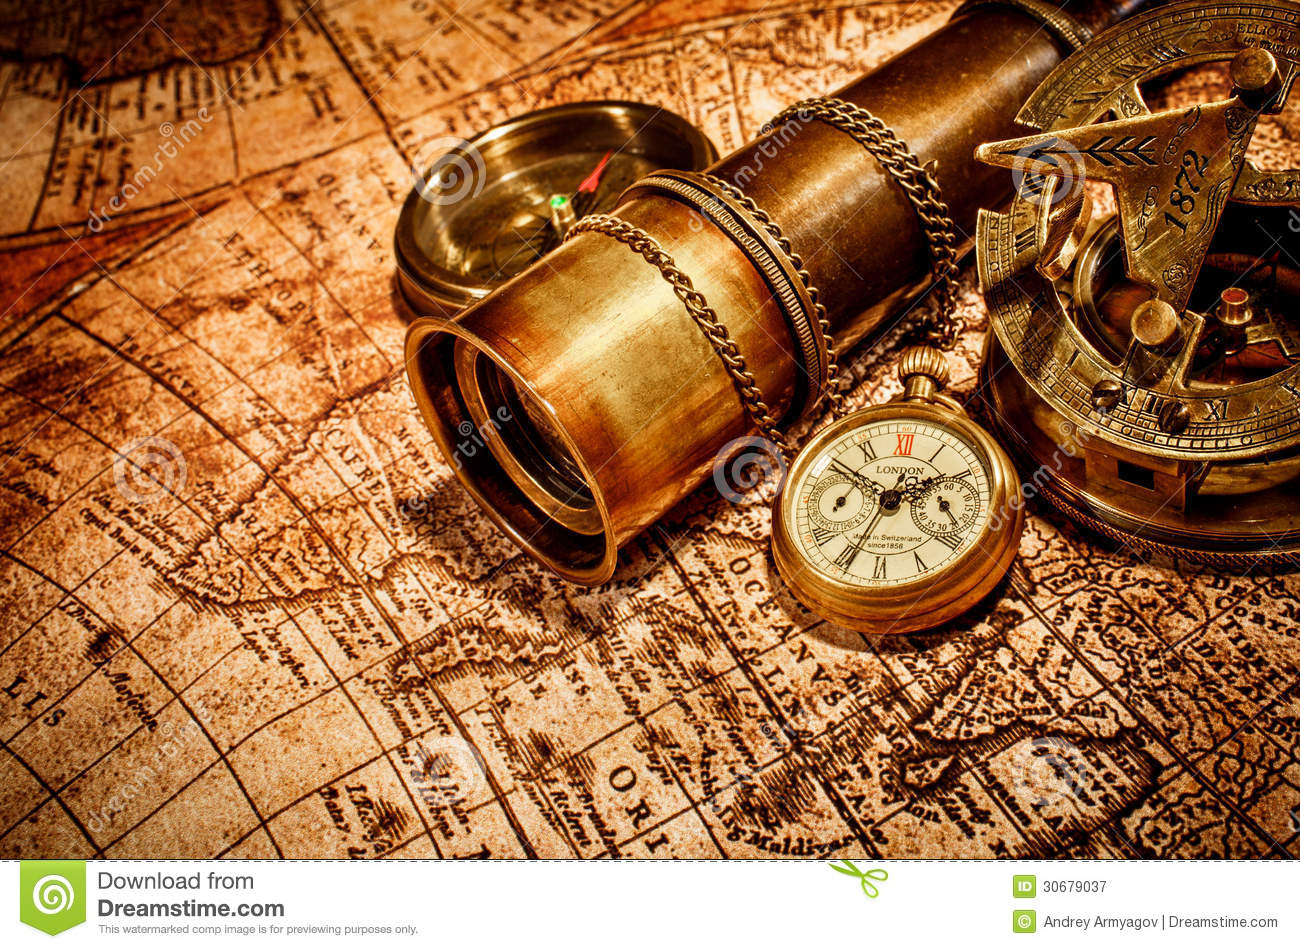 map and comp tattoo with Royalty Free Stock Photography Vintage Items Ancient Map  Pass Spyglass Pocket Watch Lying Old Image30679037 on Vintage Nautical  pass Old Map Vector 27066182 moreover Modern Globe With Desktop Stand Sketch Gm496229436 78416875 also Kate Spade Quote Desktop Wallpaper also Royalty Free Stock Photography Vintage Items Ancient Map  pass Spyglass Pocket Watch Lying Old Image30679037 as well Oud Ouderwetse Kompas Oud Kaart 11009338.